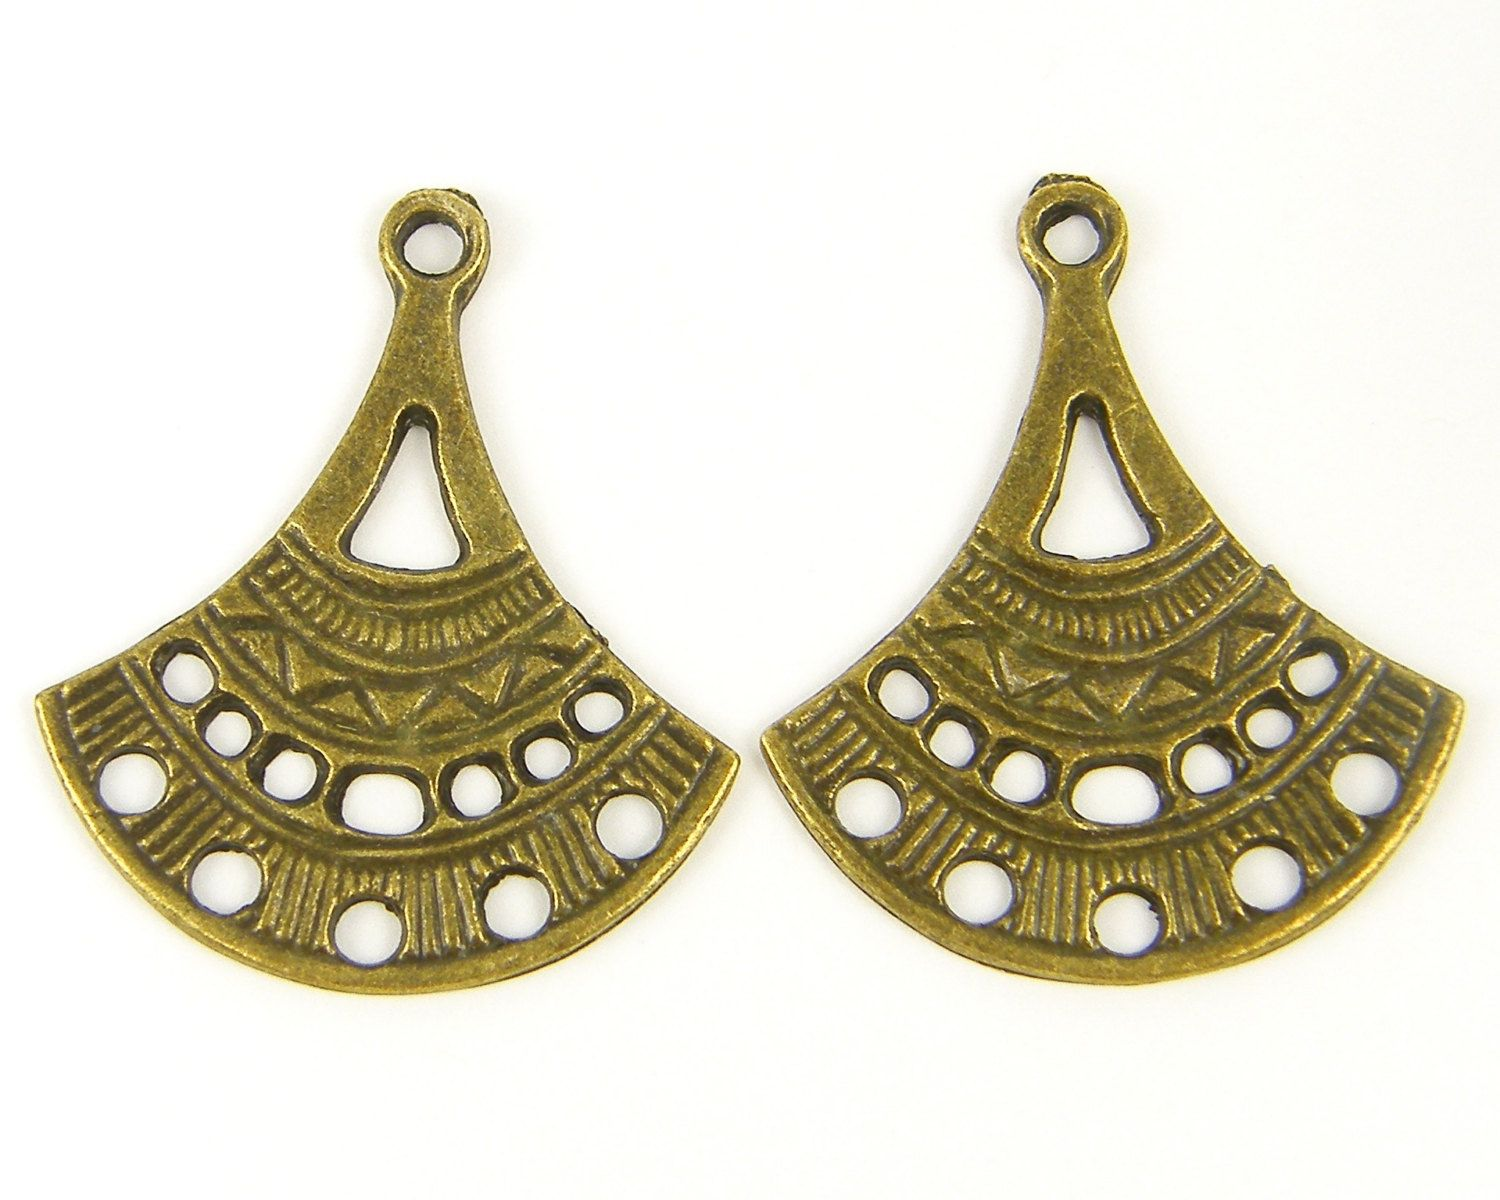 Antique brass tribal chandelier earring findings earring connectors antique brass tribal chandelier earring findings earring connectors jewelrydiy diyjewelry etsy arubaitofo Image collections